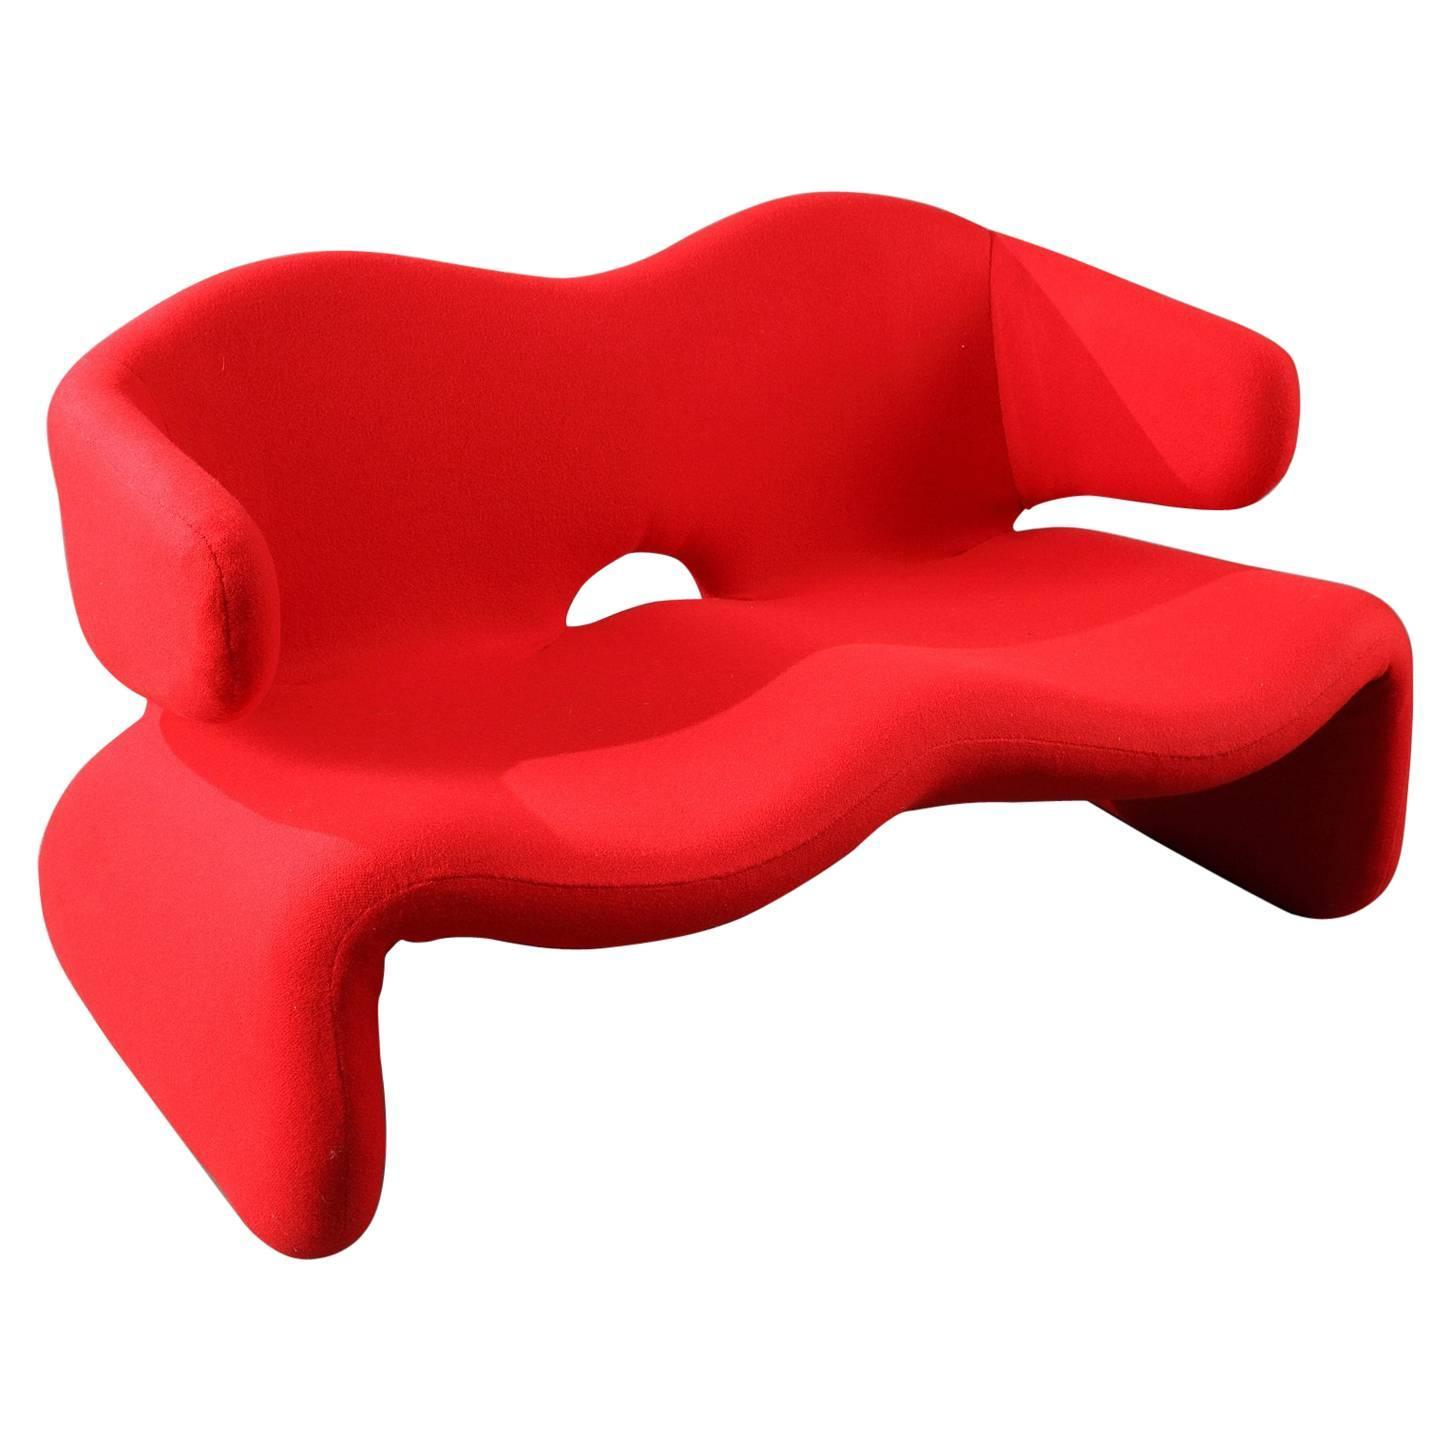 Djinn Sofa by Olivier Mourgue 2001 A Space Odyssey at 1stdibs